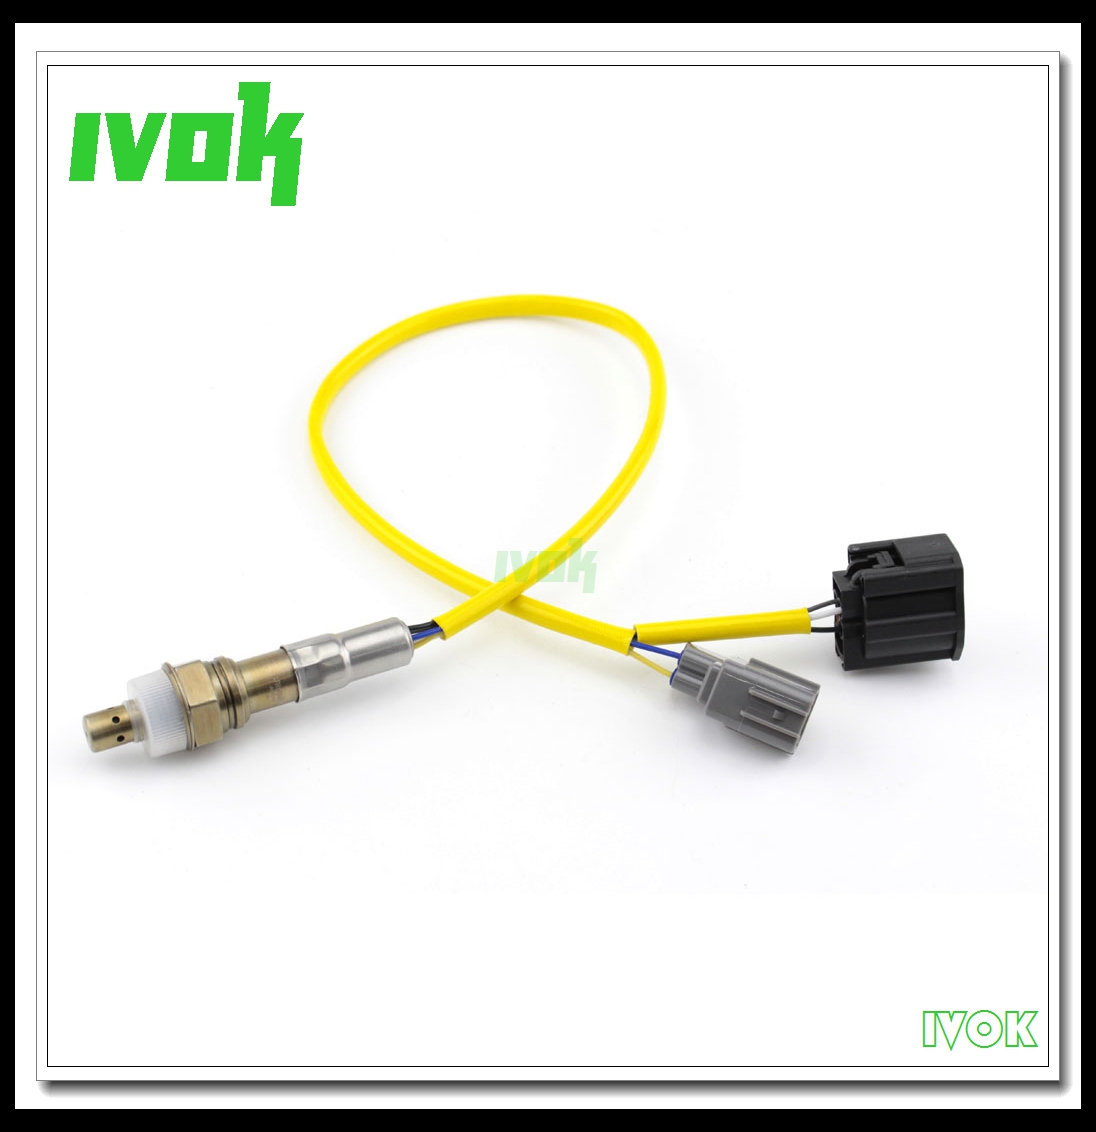 US $41.98 |5 Wire Oxygen Air Fuel Ratio Oxygen Sensor for Mazda 6 LFH1 on